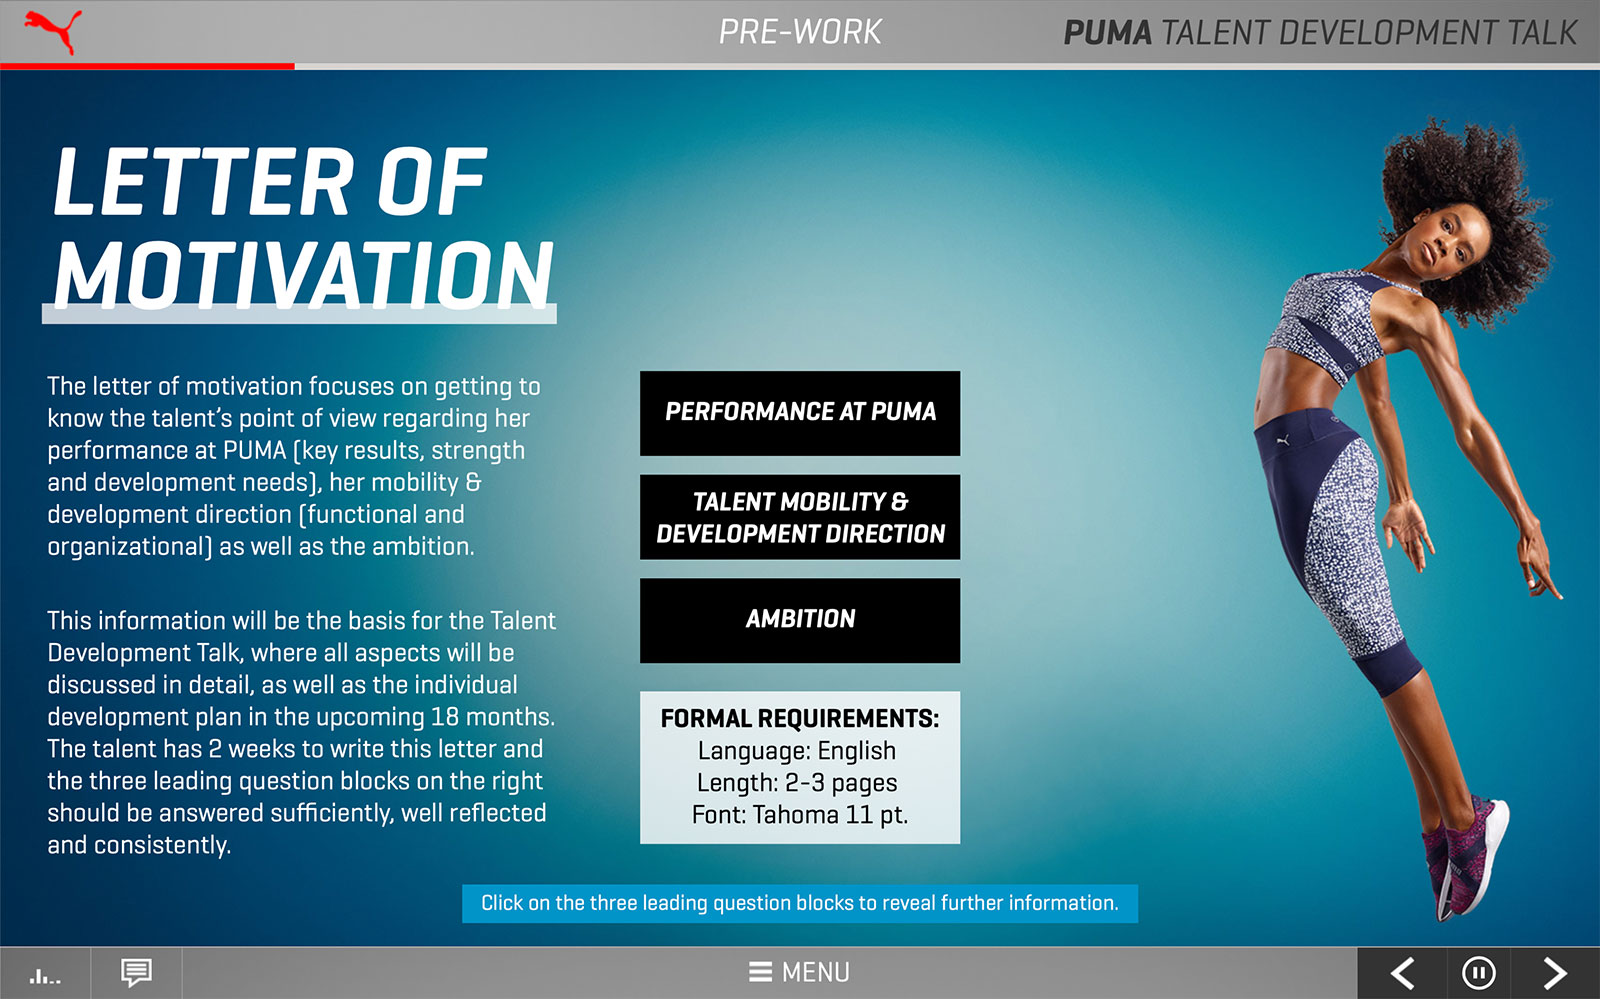 Screenshot PUMA Talent Development Talk 'Letter of motivation'